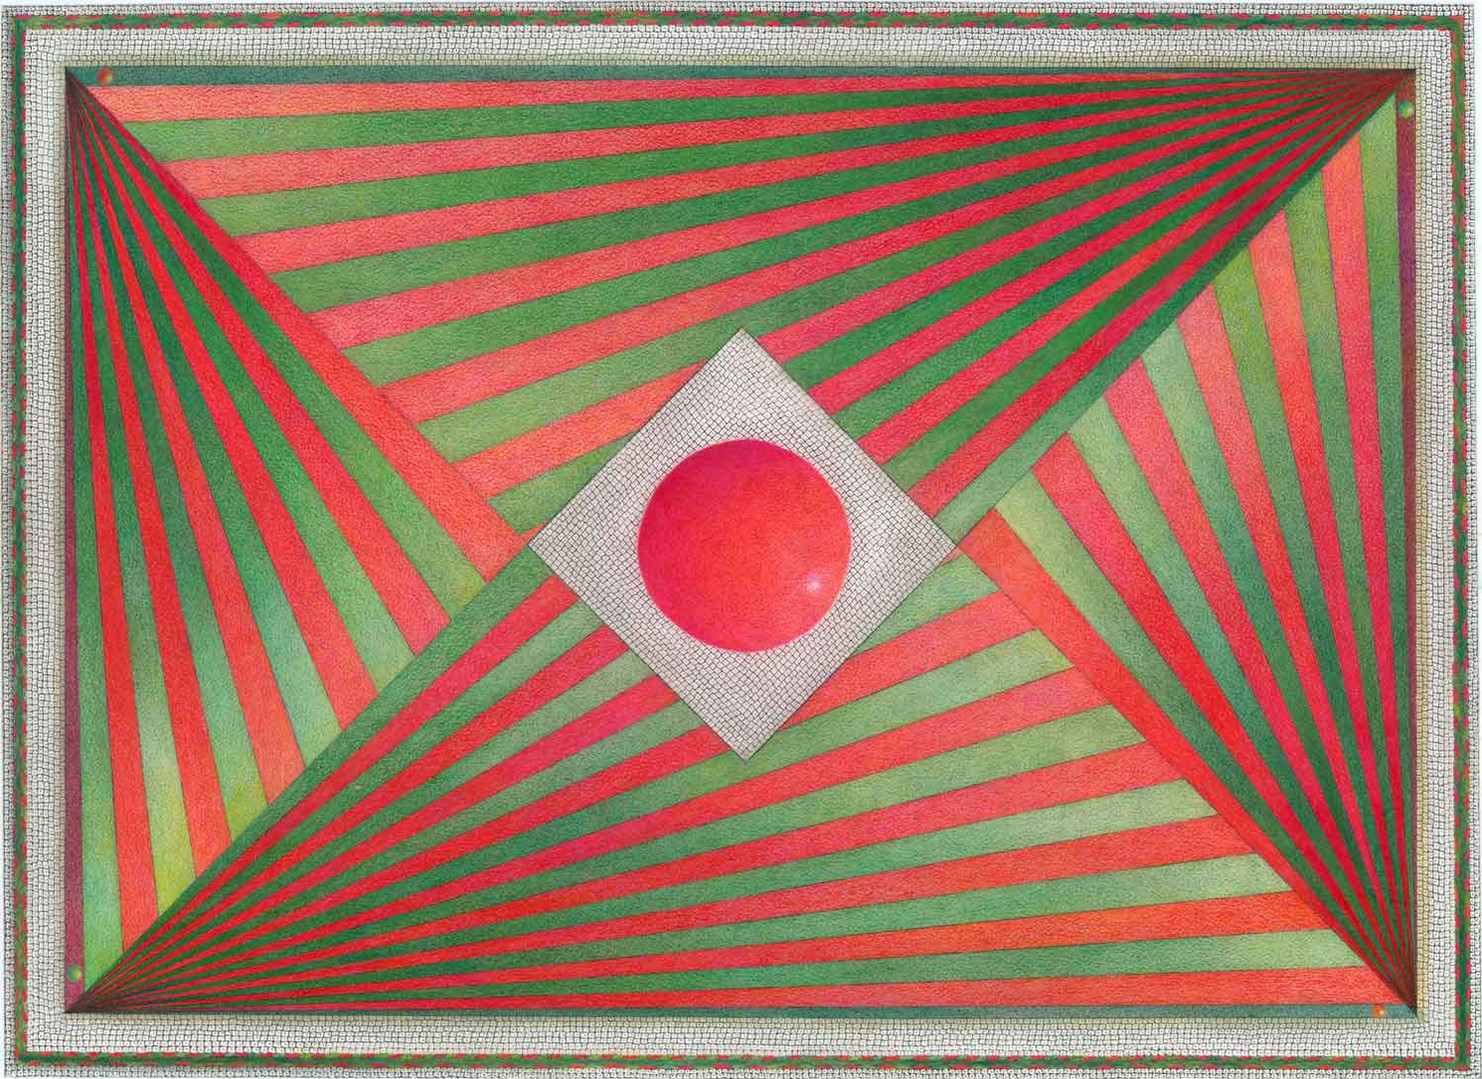 Greg-Ingerson_Red-And-Green-21x28.jpg